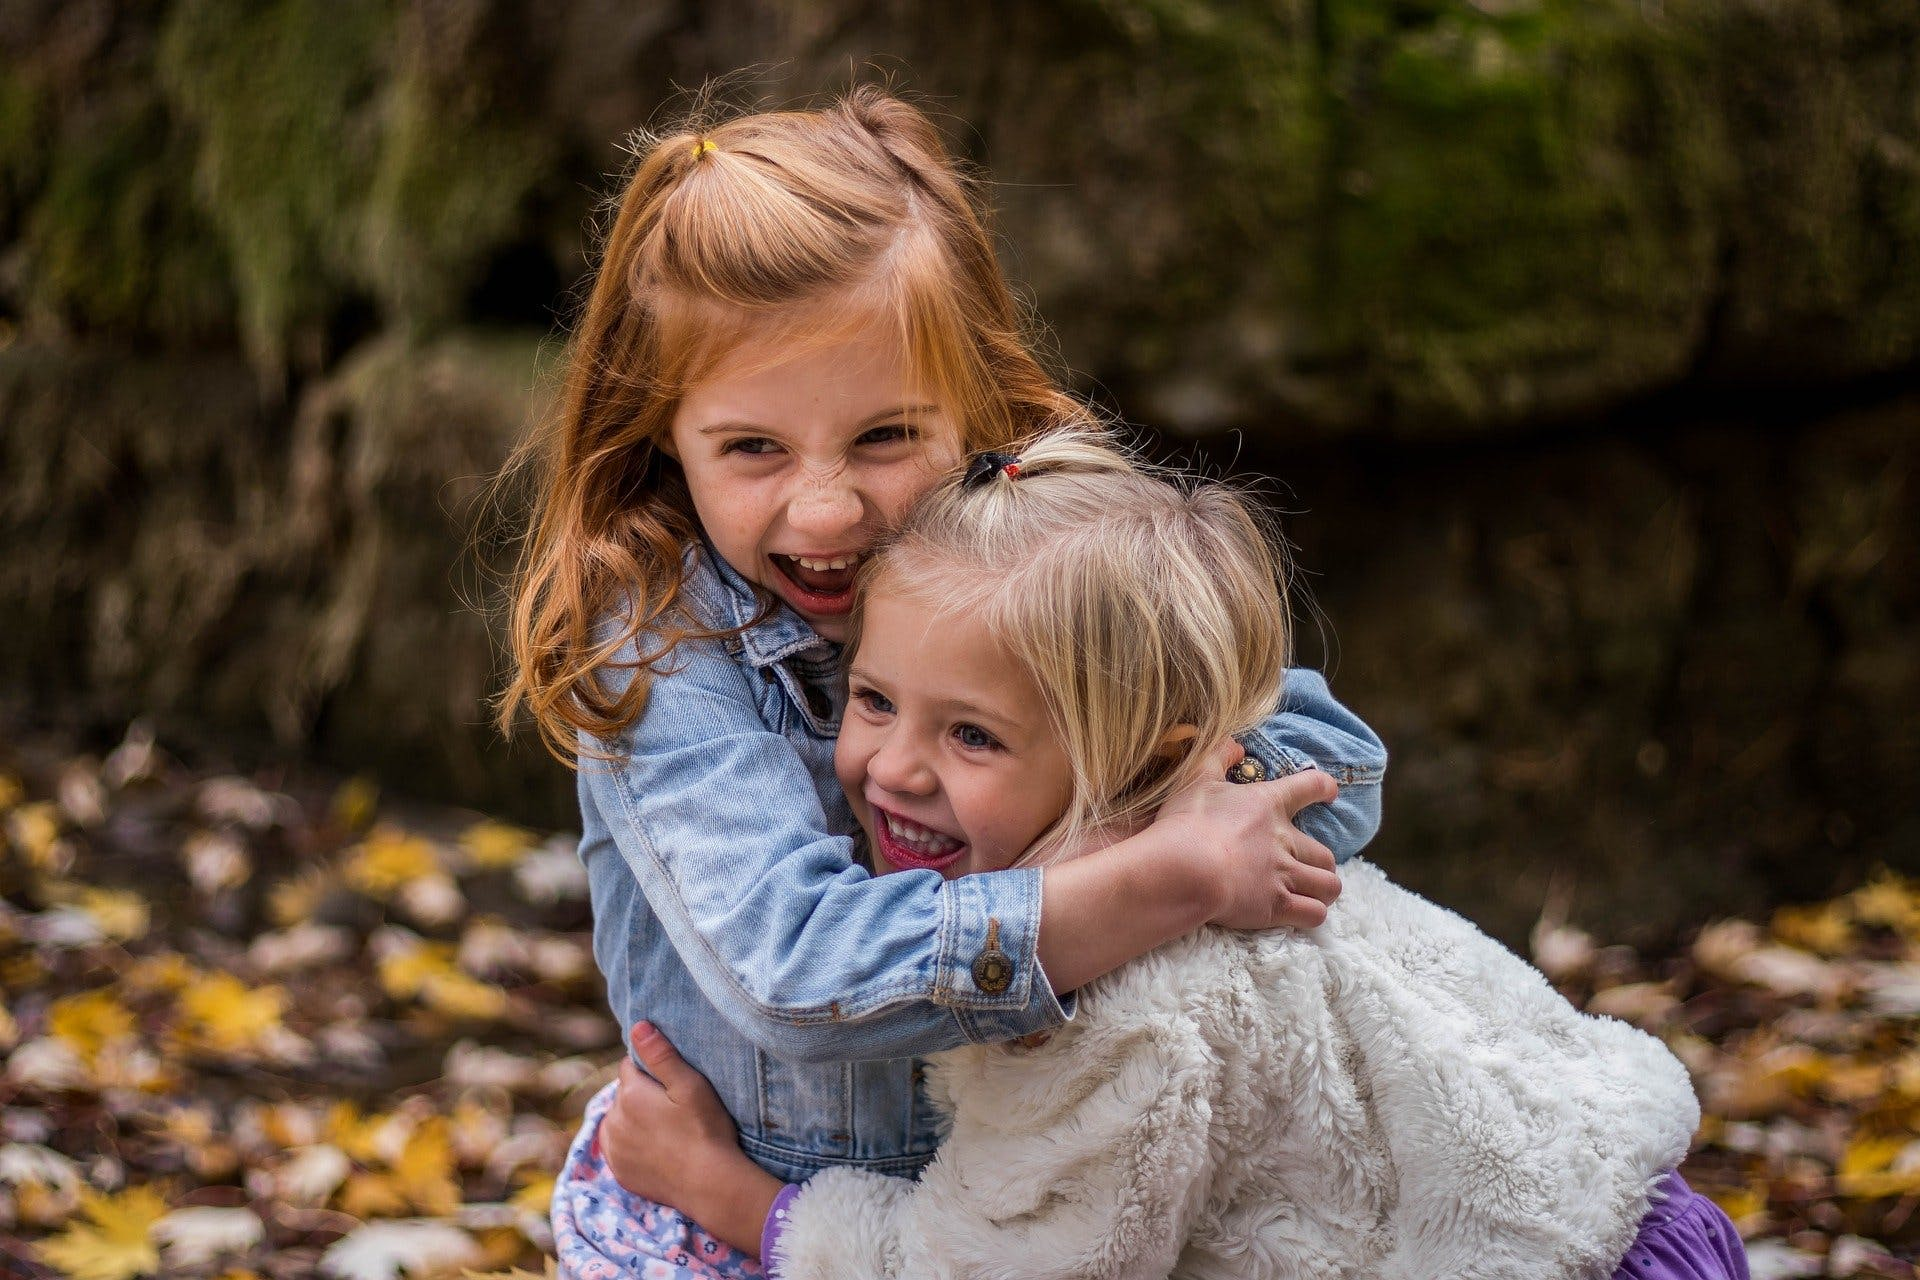 two young grls playing together.